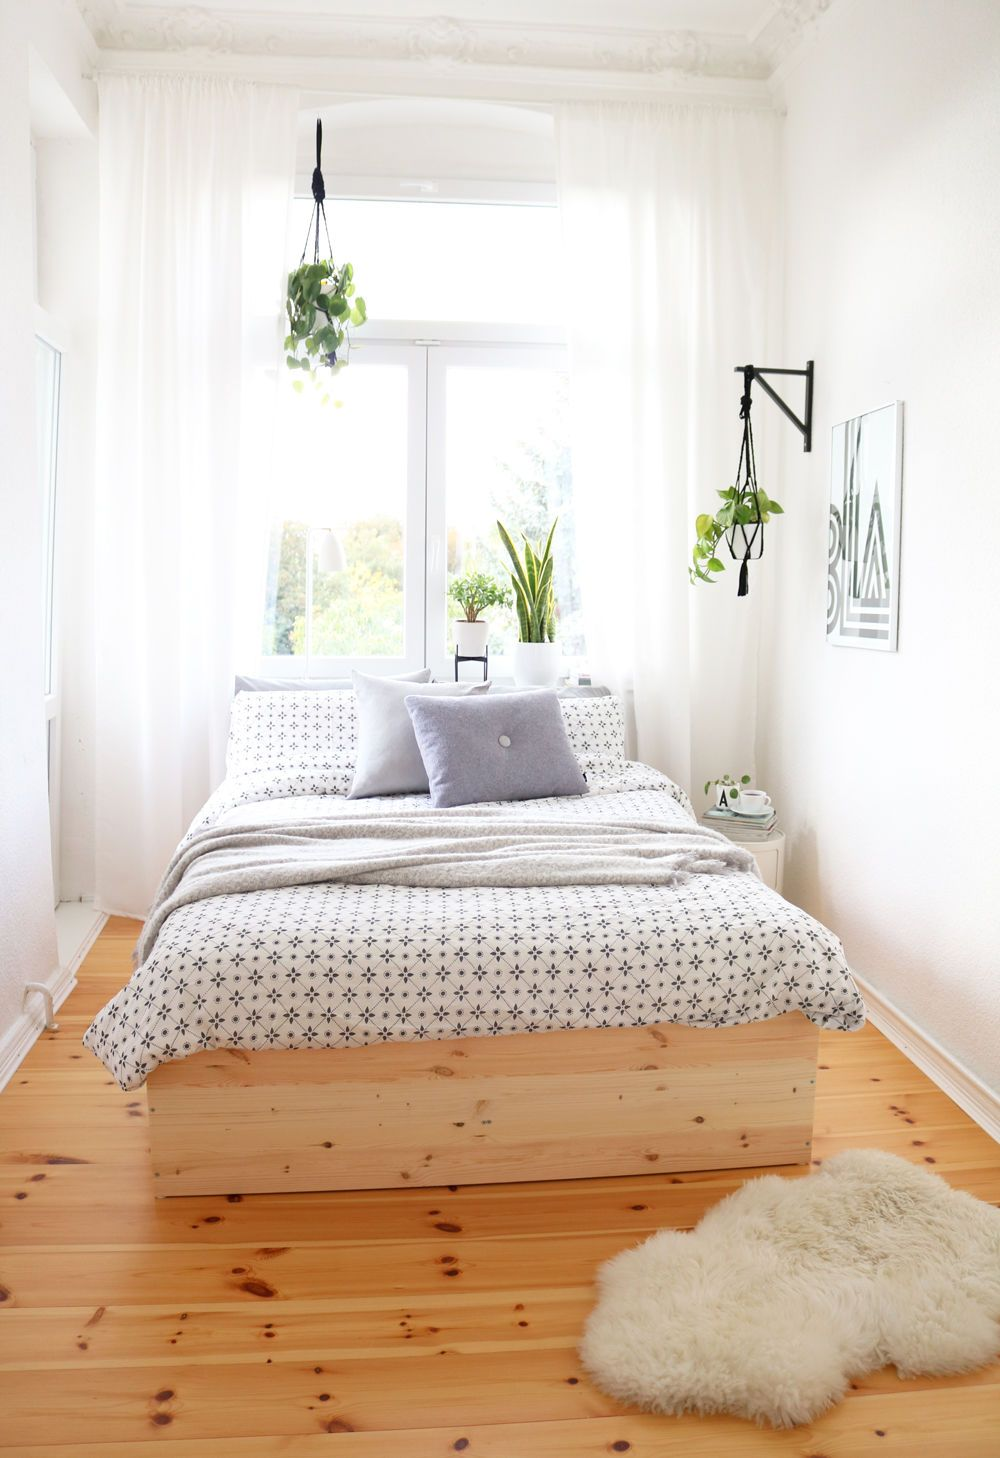 23 Fantasievoll Do It Yourself Ideen Schlafzimmer